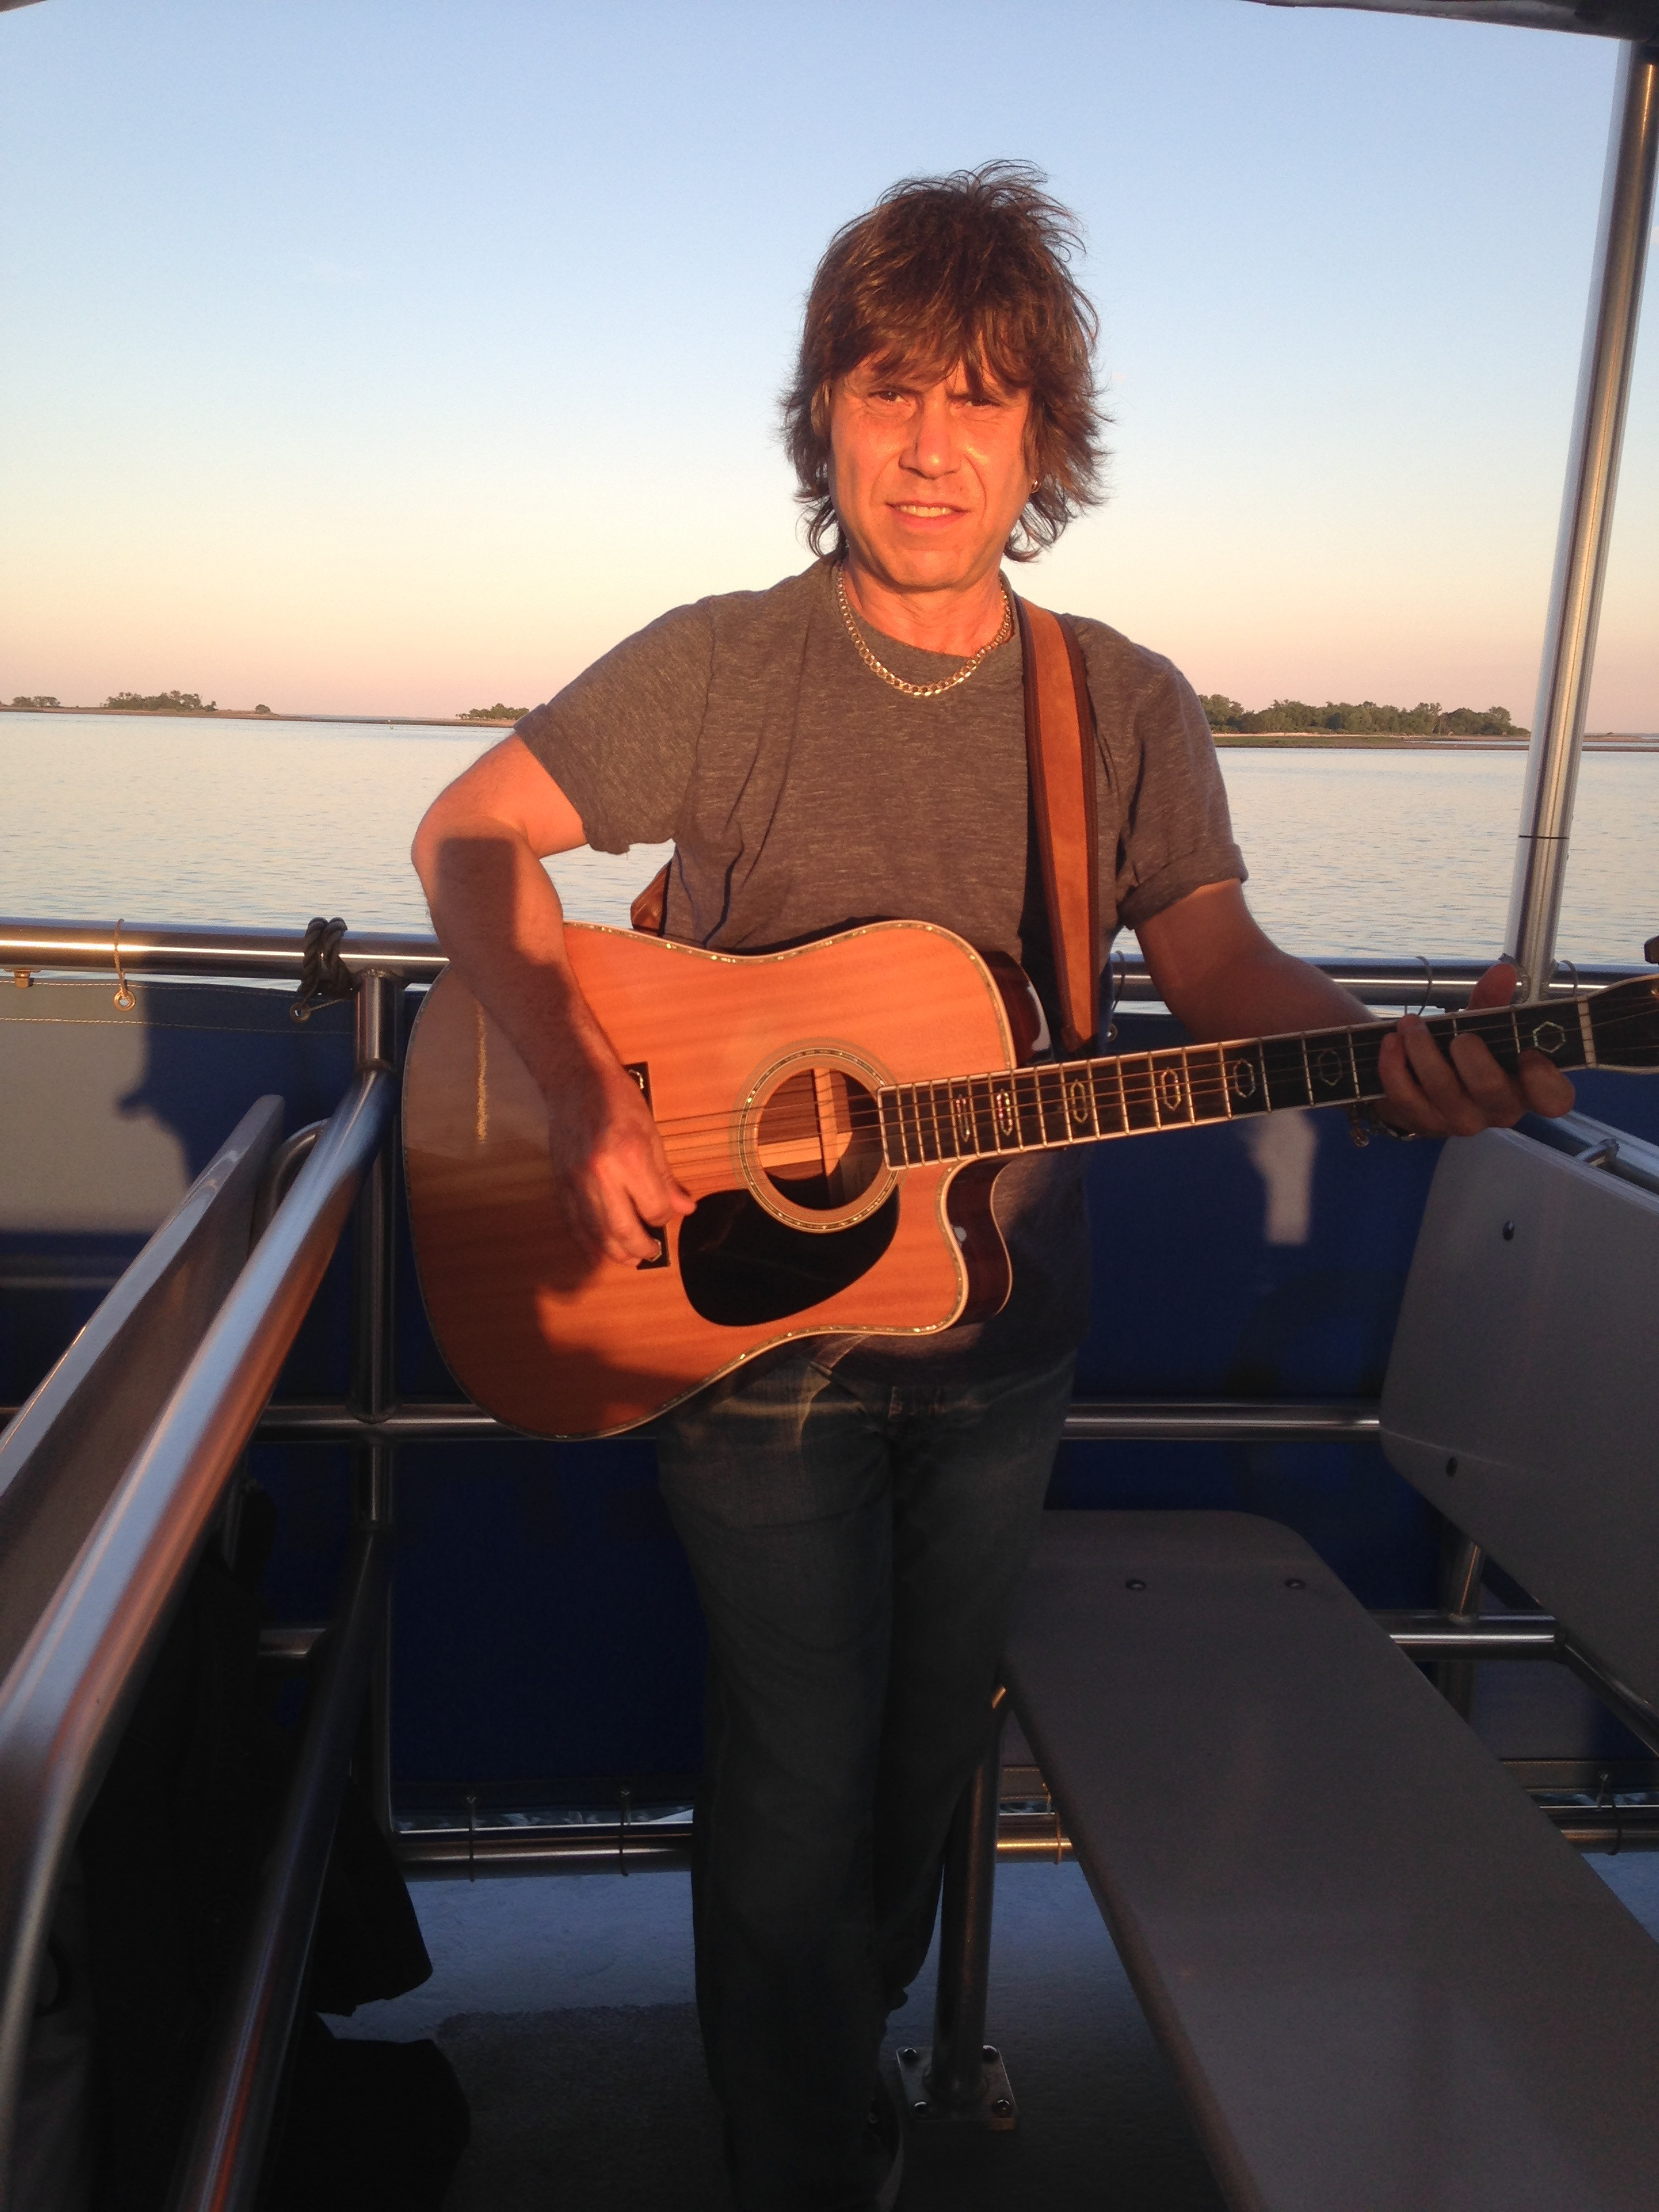 Sheffield Island Acoustic Cruise (Norwalk, Ct.)